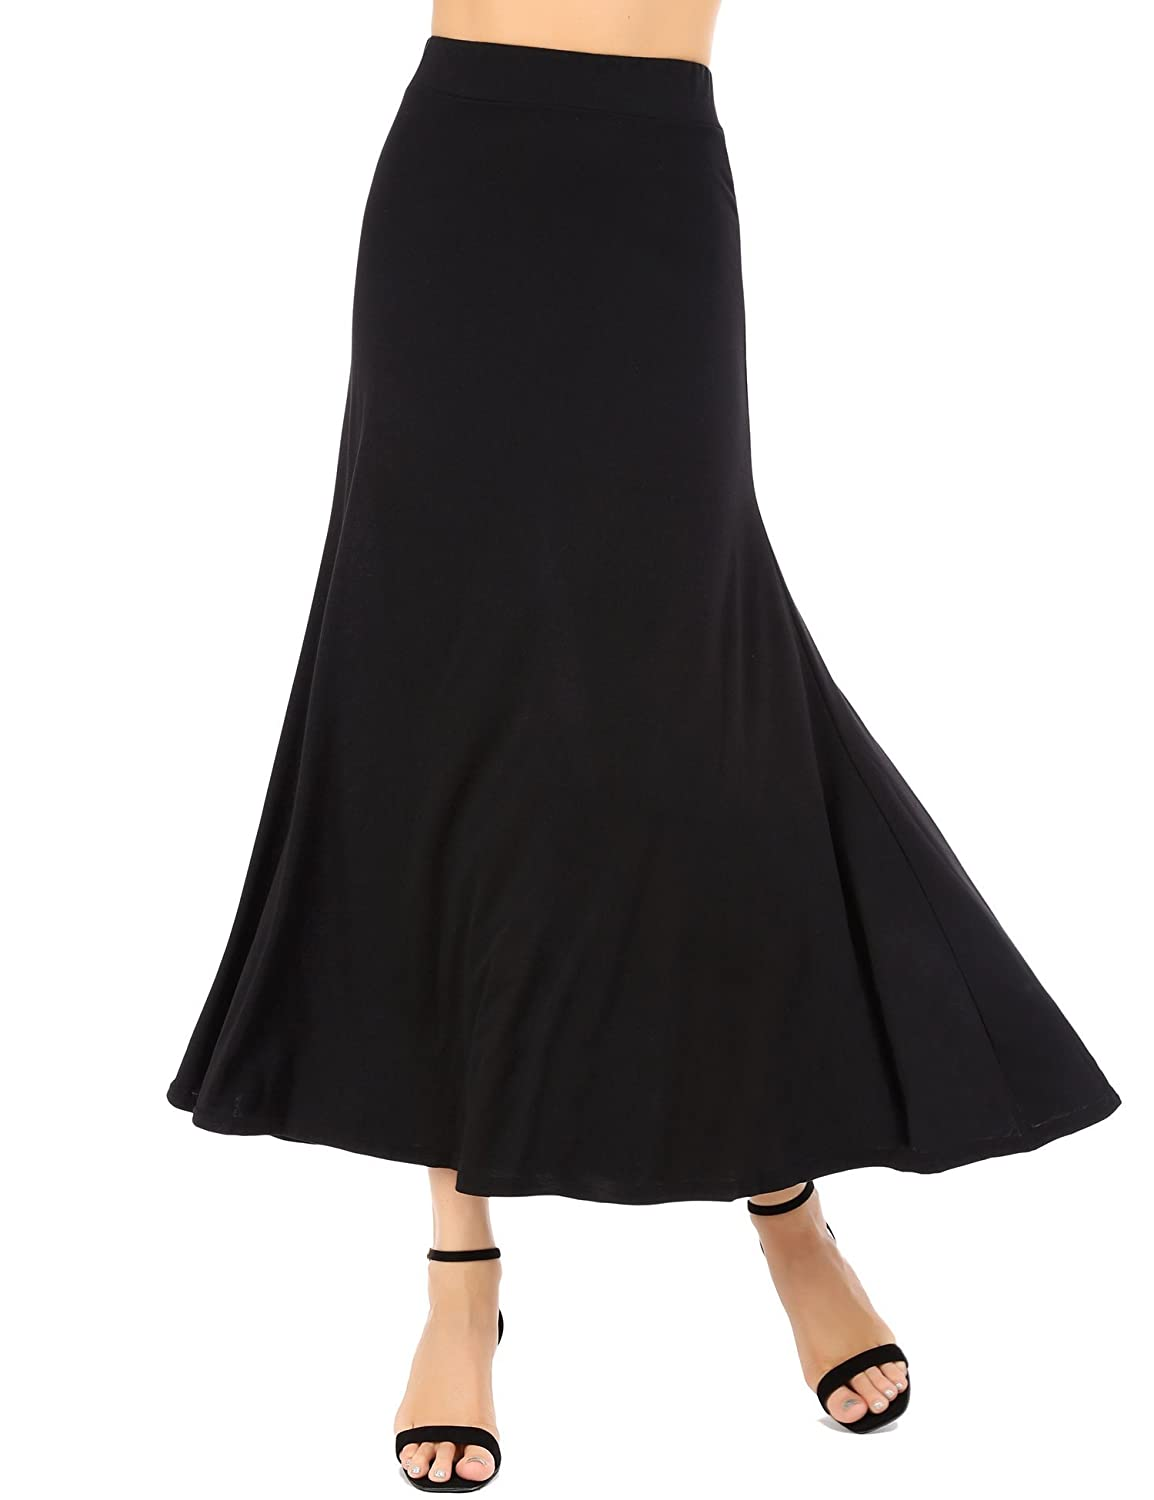 0647848f8b Feature: elastic waist, stretchable, flowy fit, smooth texture,  lightweight, ankle length, silky, comfortable. Style: floor length skirt,  ...